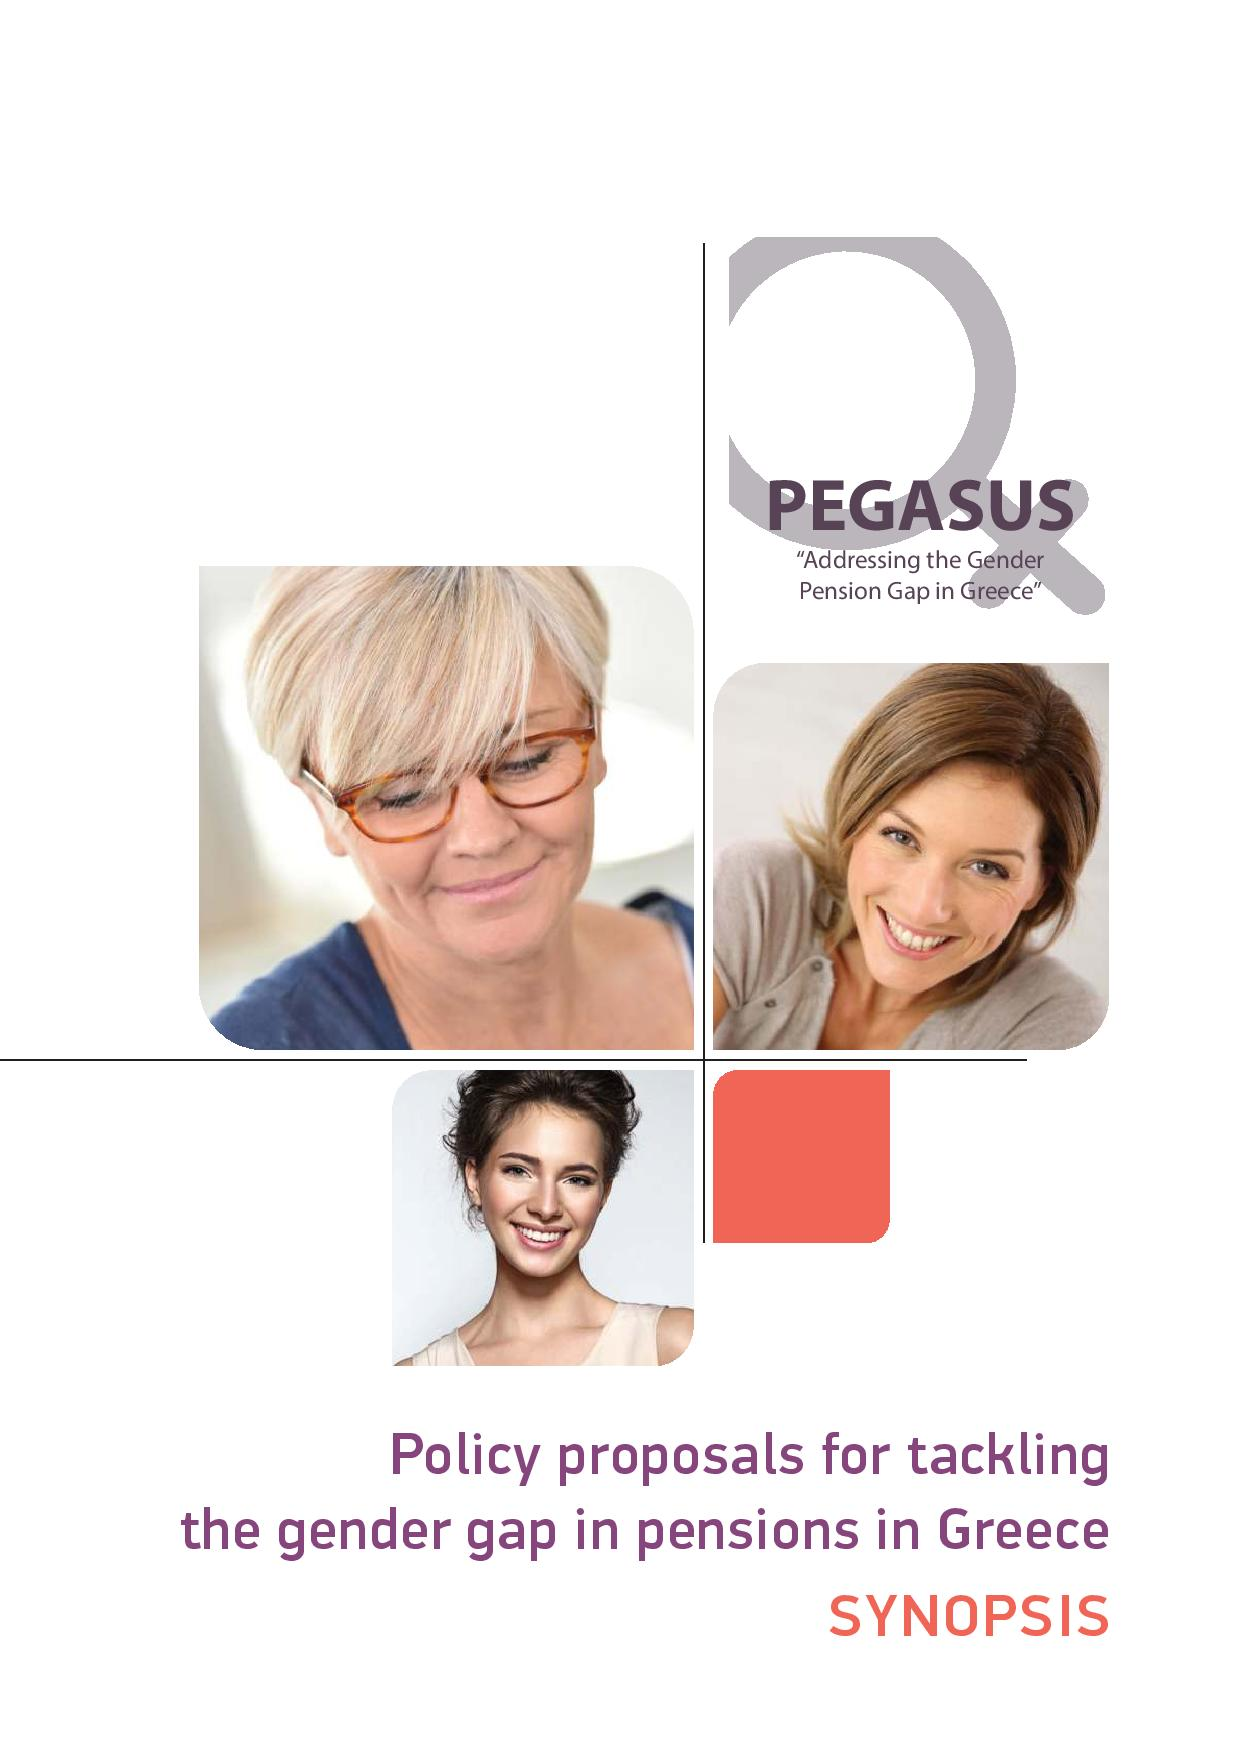 Synopsis - Policy proposals